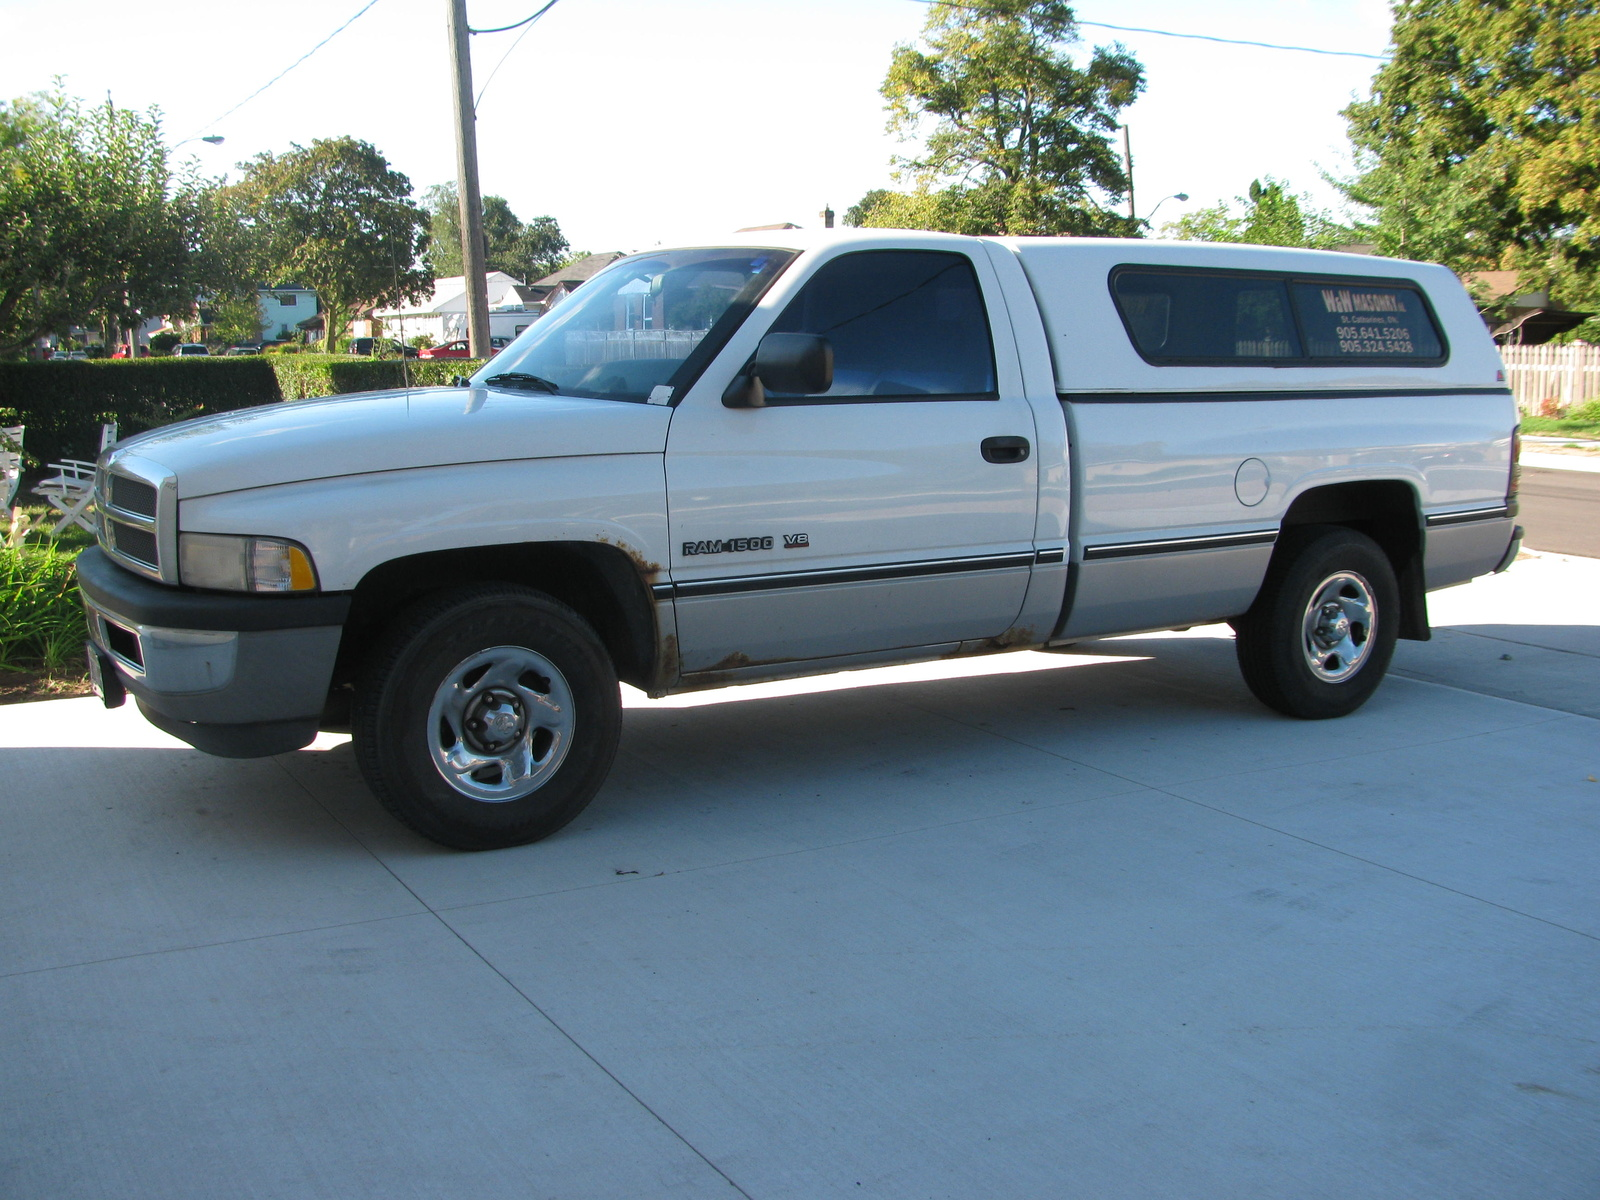 I have a 1997 dodge ram 1500 v i n 1b7hc16yxvj619560 2 w d can you tell what the common factory transmission was